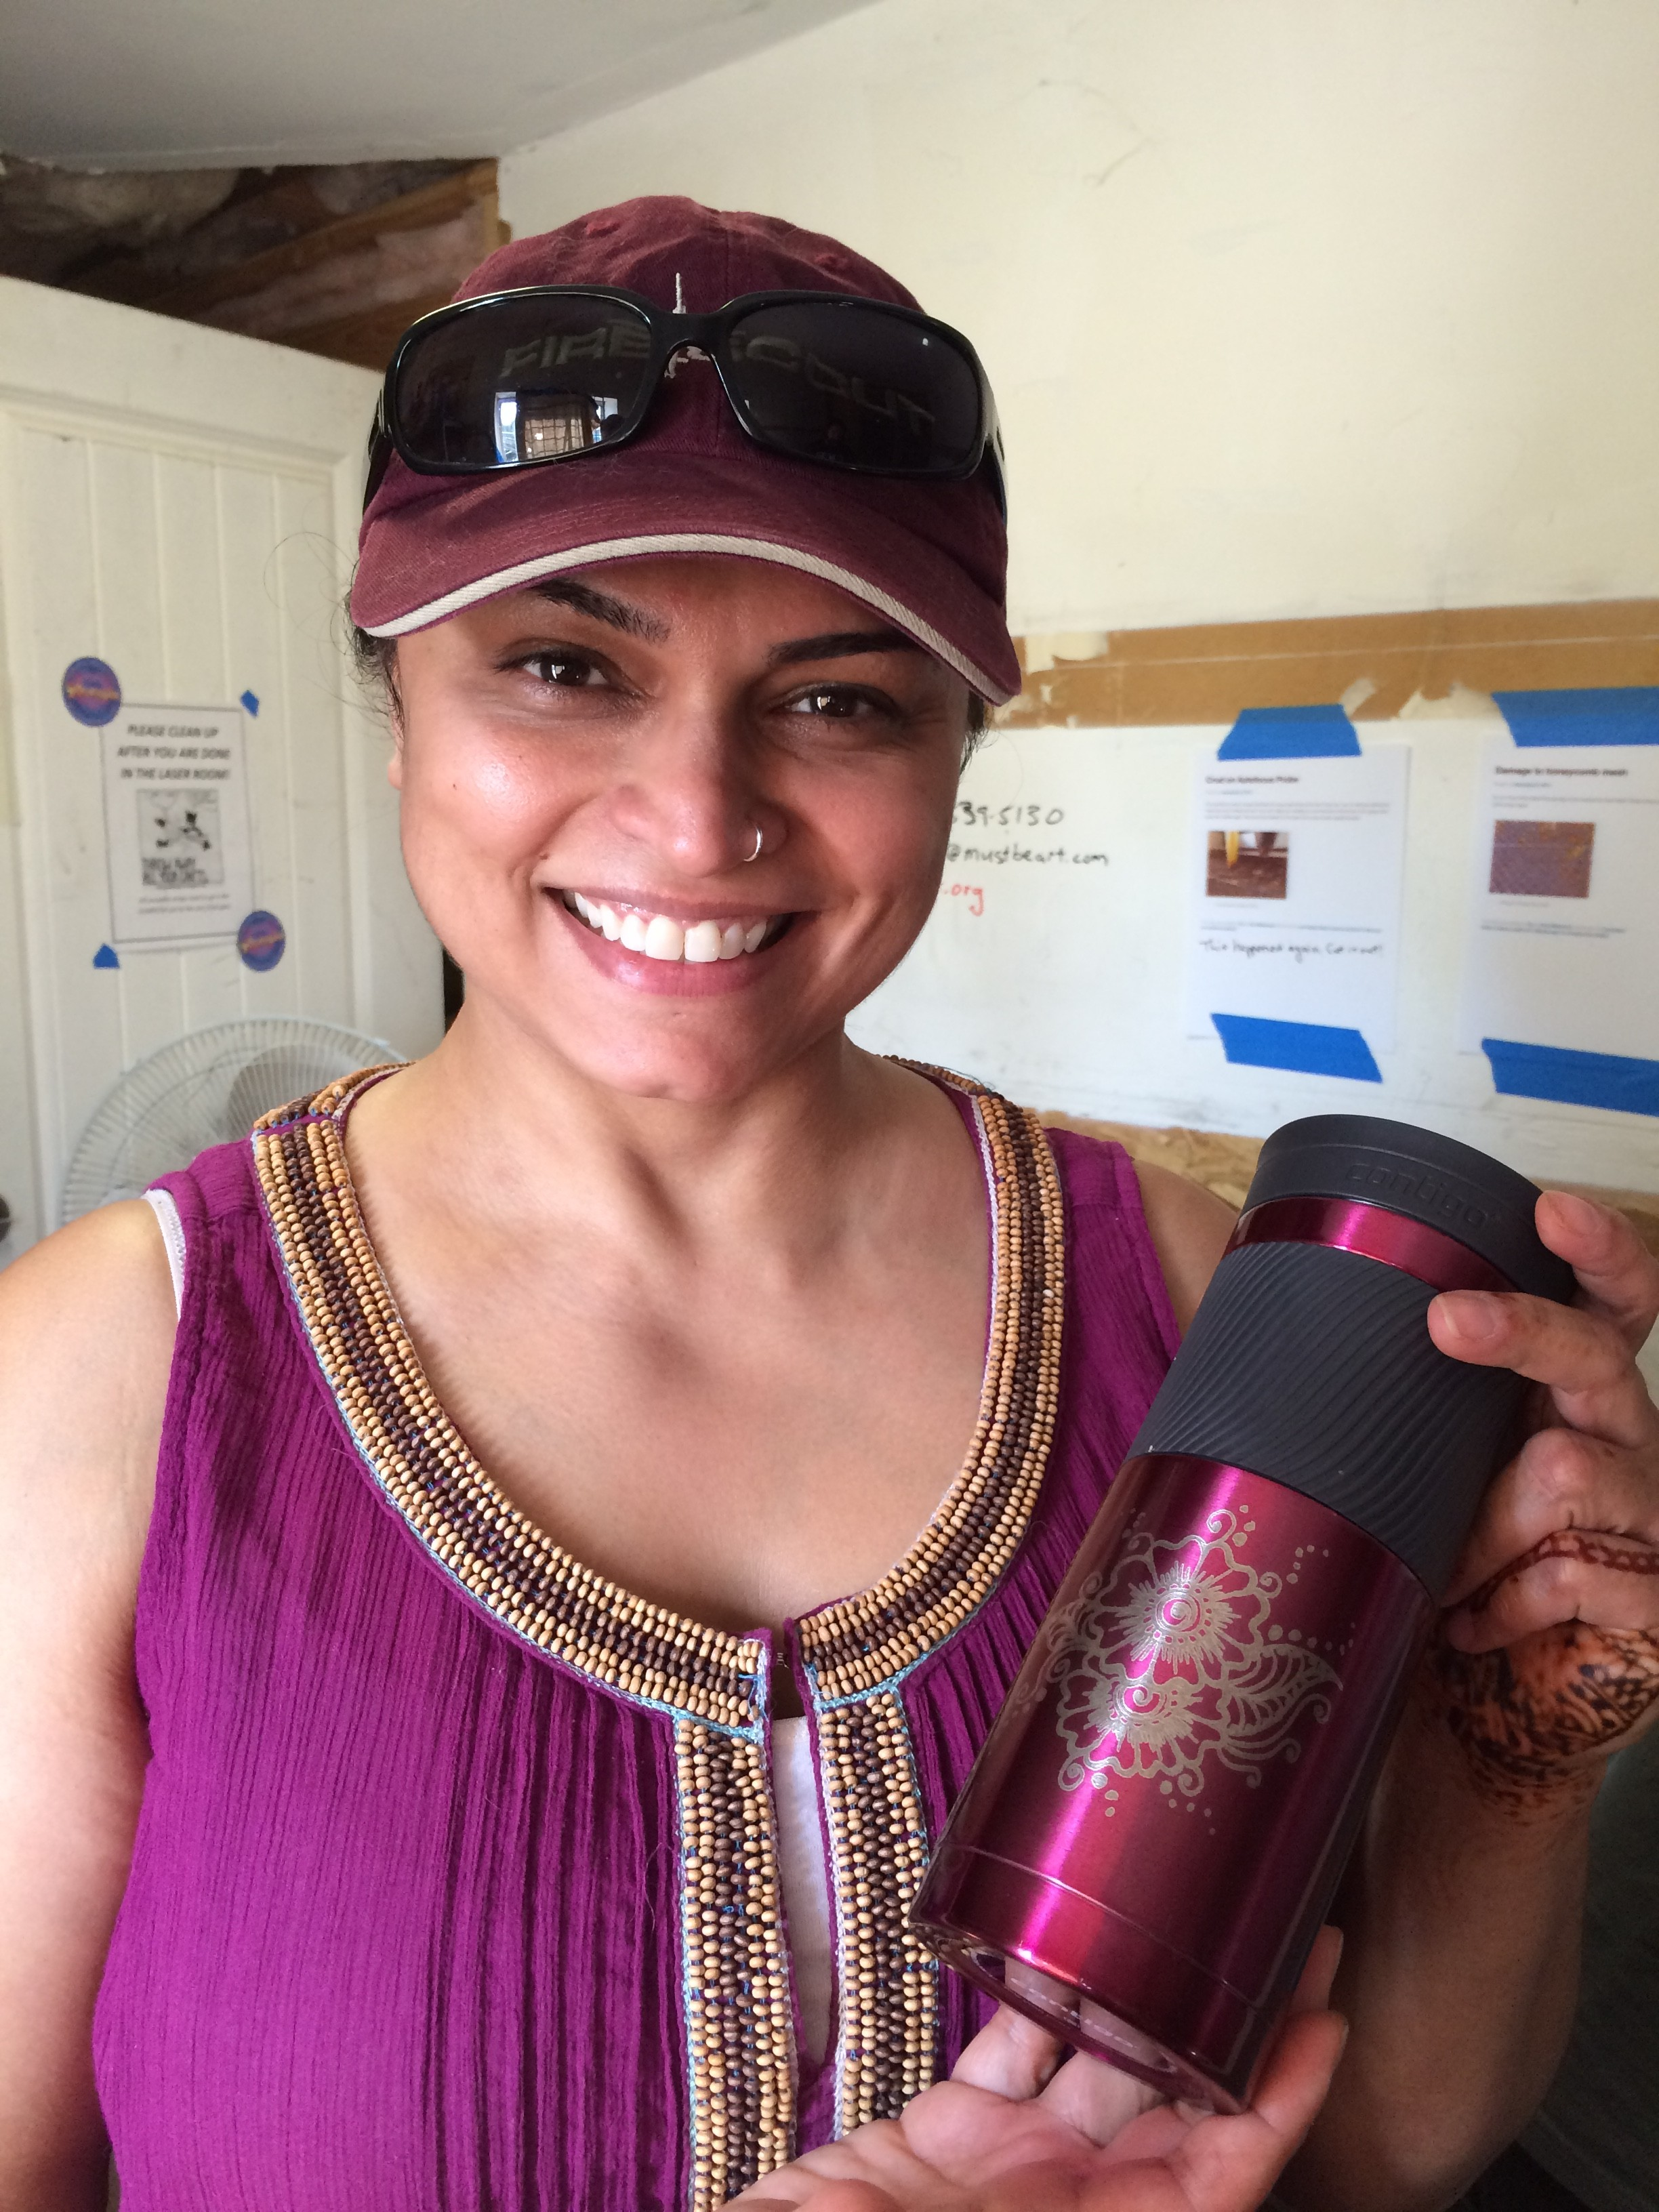 Sonie showing off her anodized aluminum water bottle with the henna pattern freshly engraved on the rotary adapter.